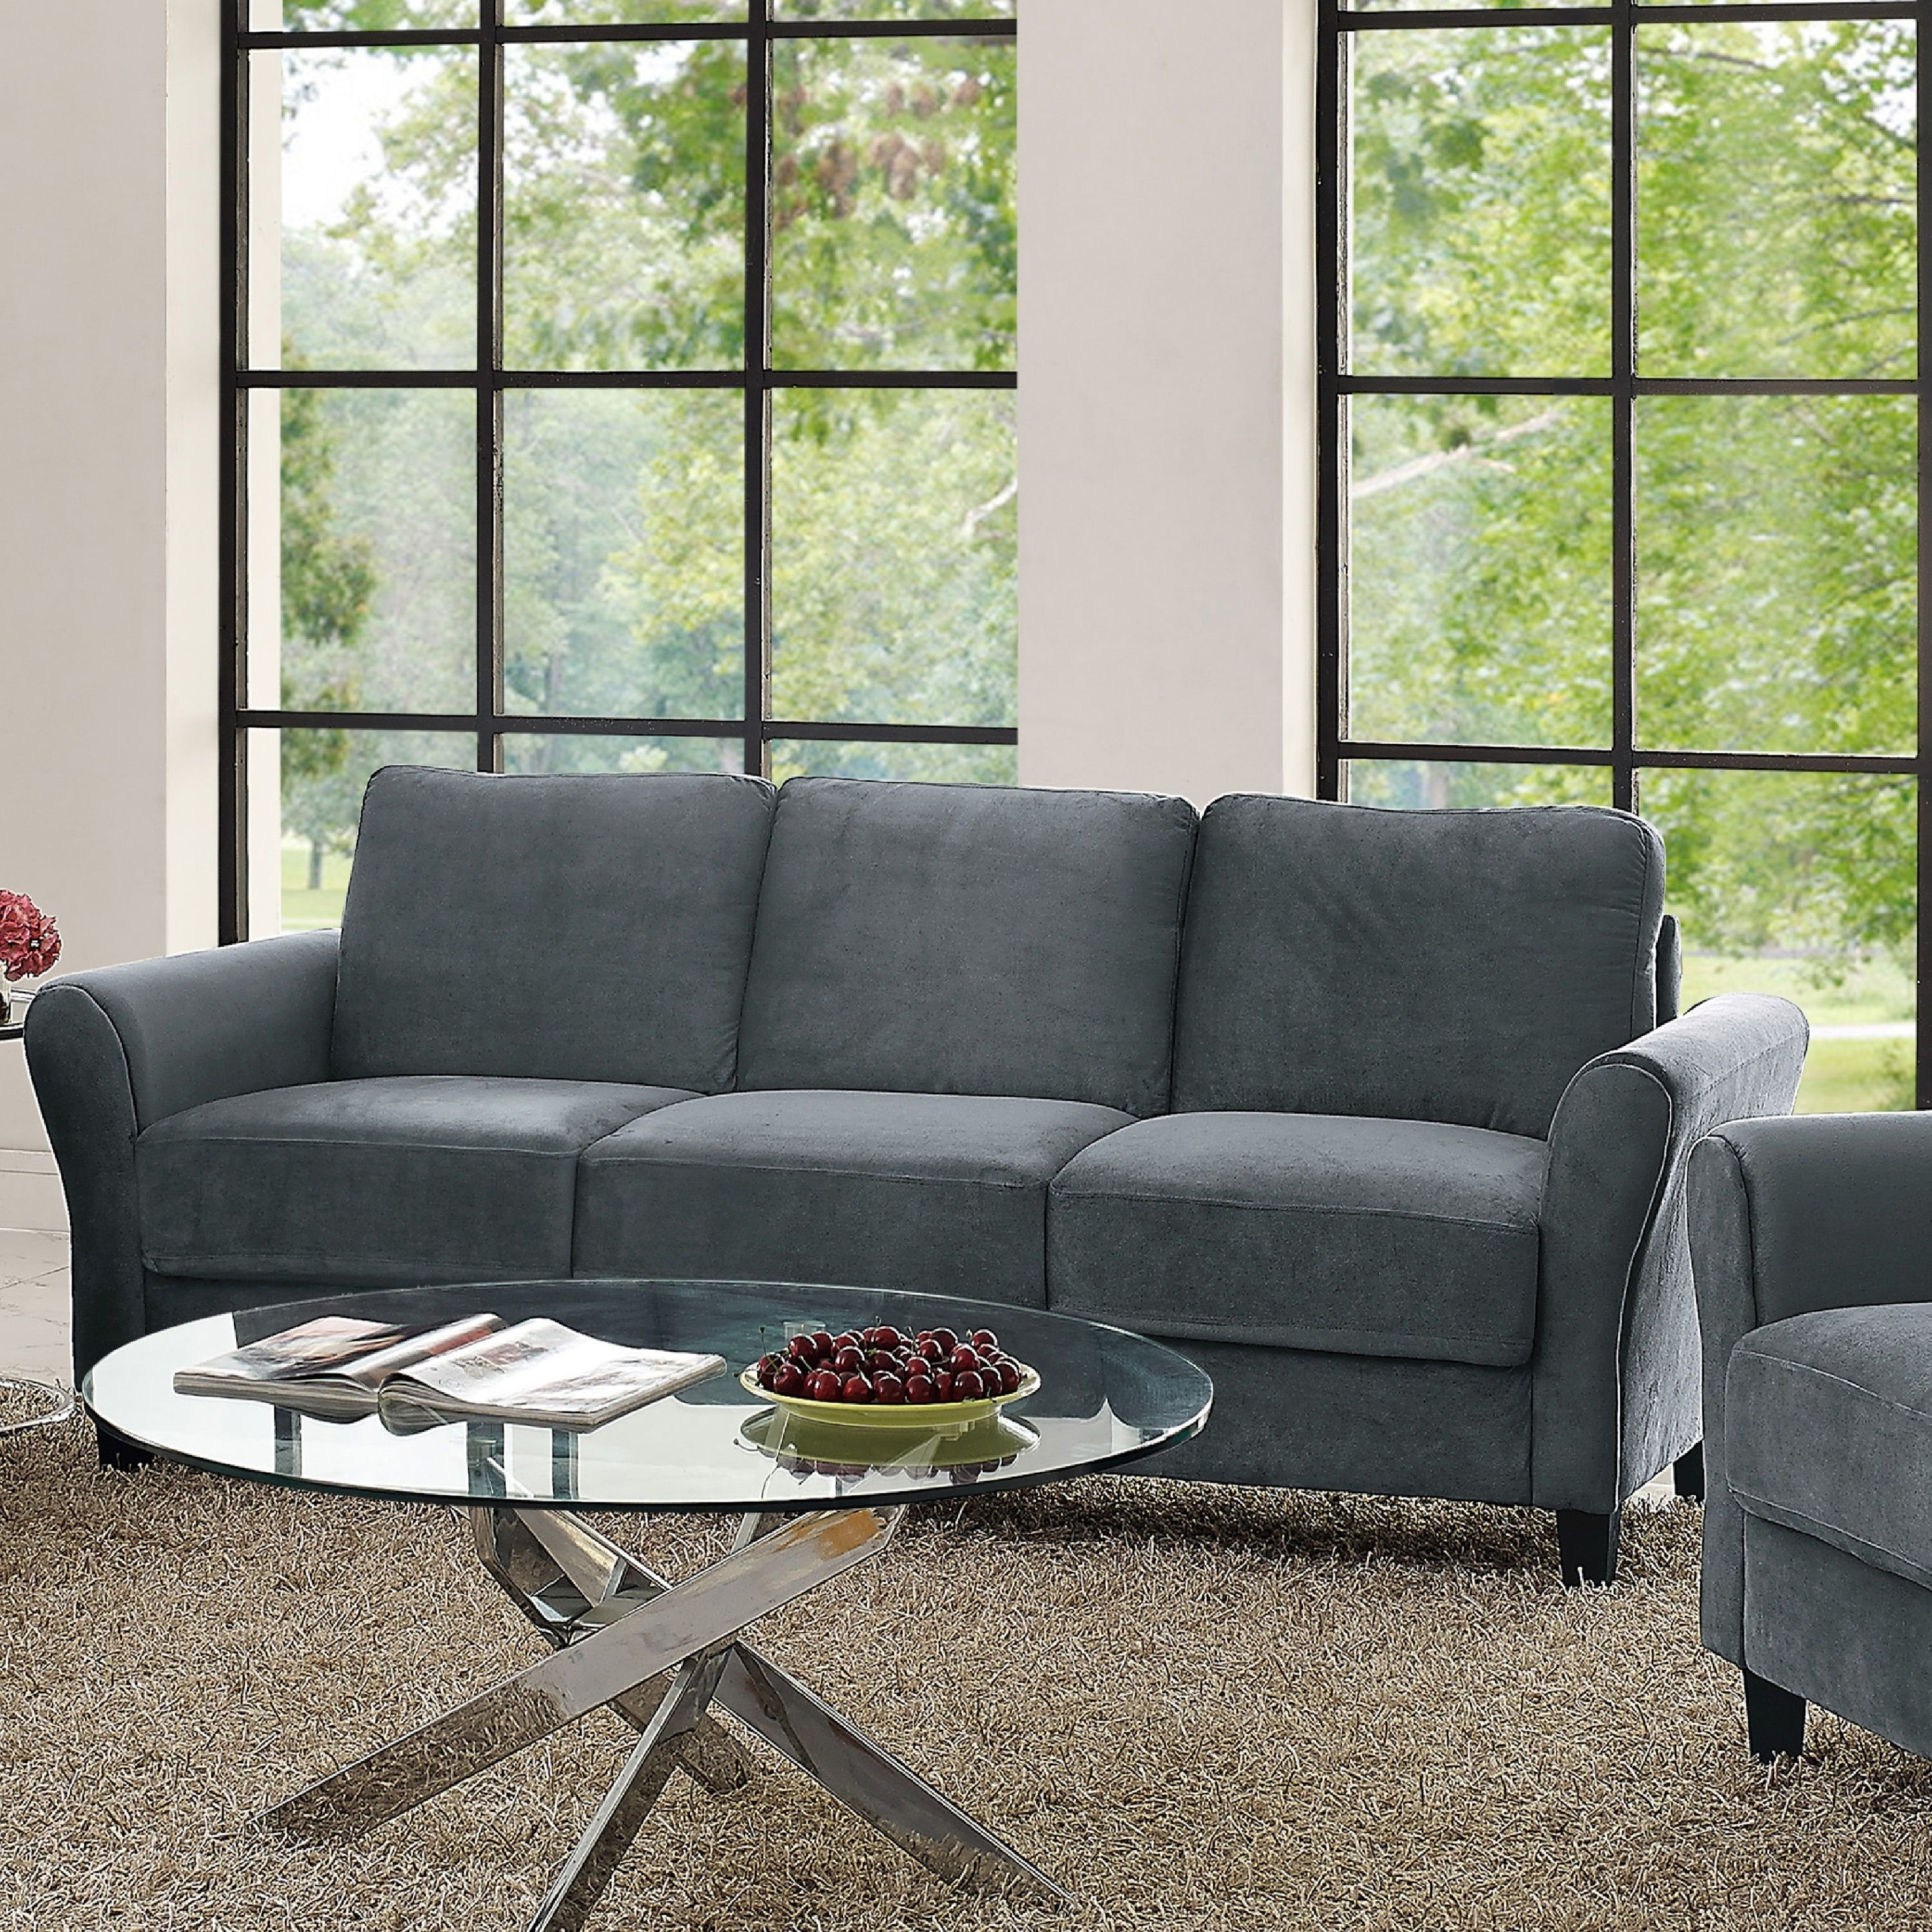 Lifestyle Solutions Waverly Sofa Ping The Best Deals On Sofas